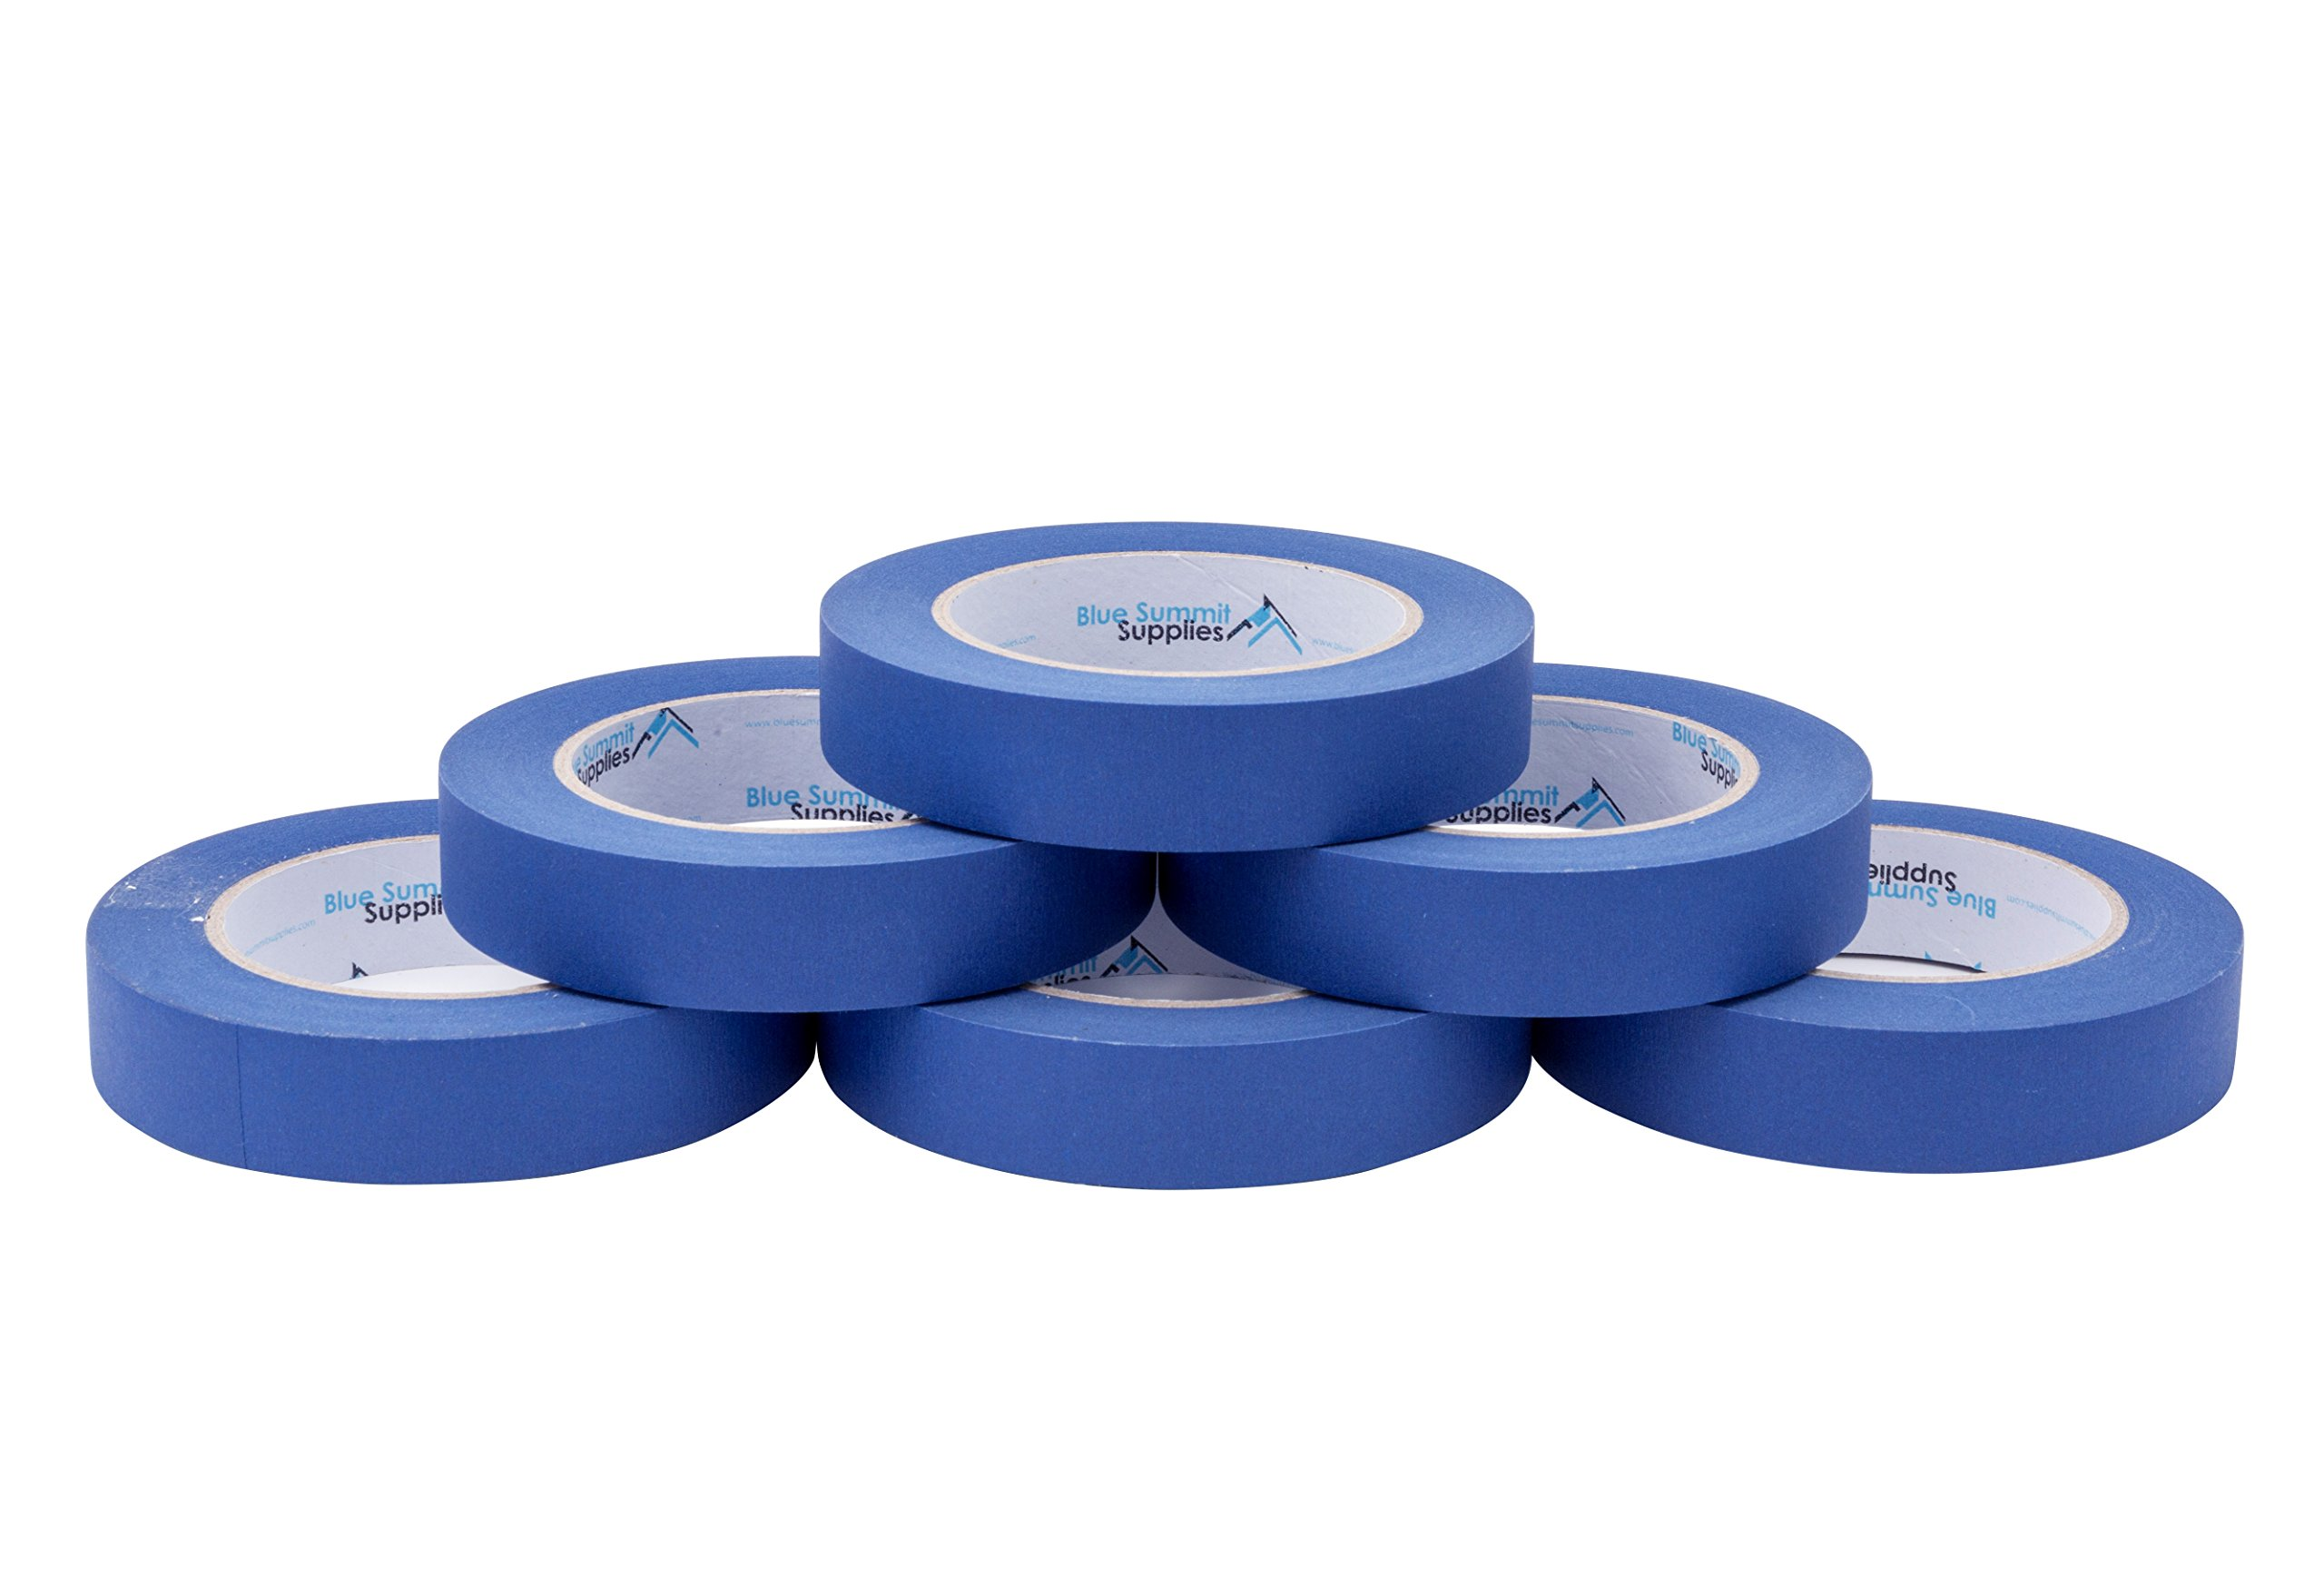 6 Pack 0.94'' Blue Painters Tape, medium adhesive that sticks well but leaves no residue behind, 60 yards Length, 6 Rolls, 360 Total Yards